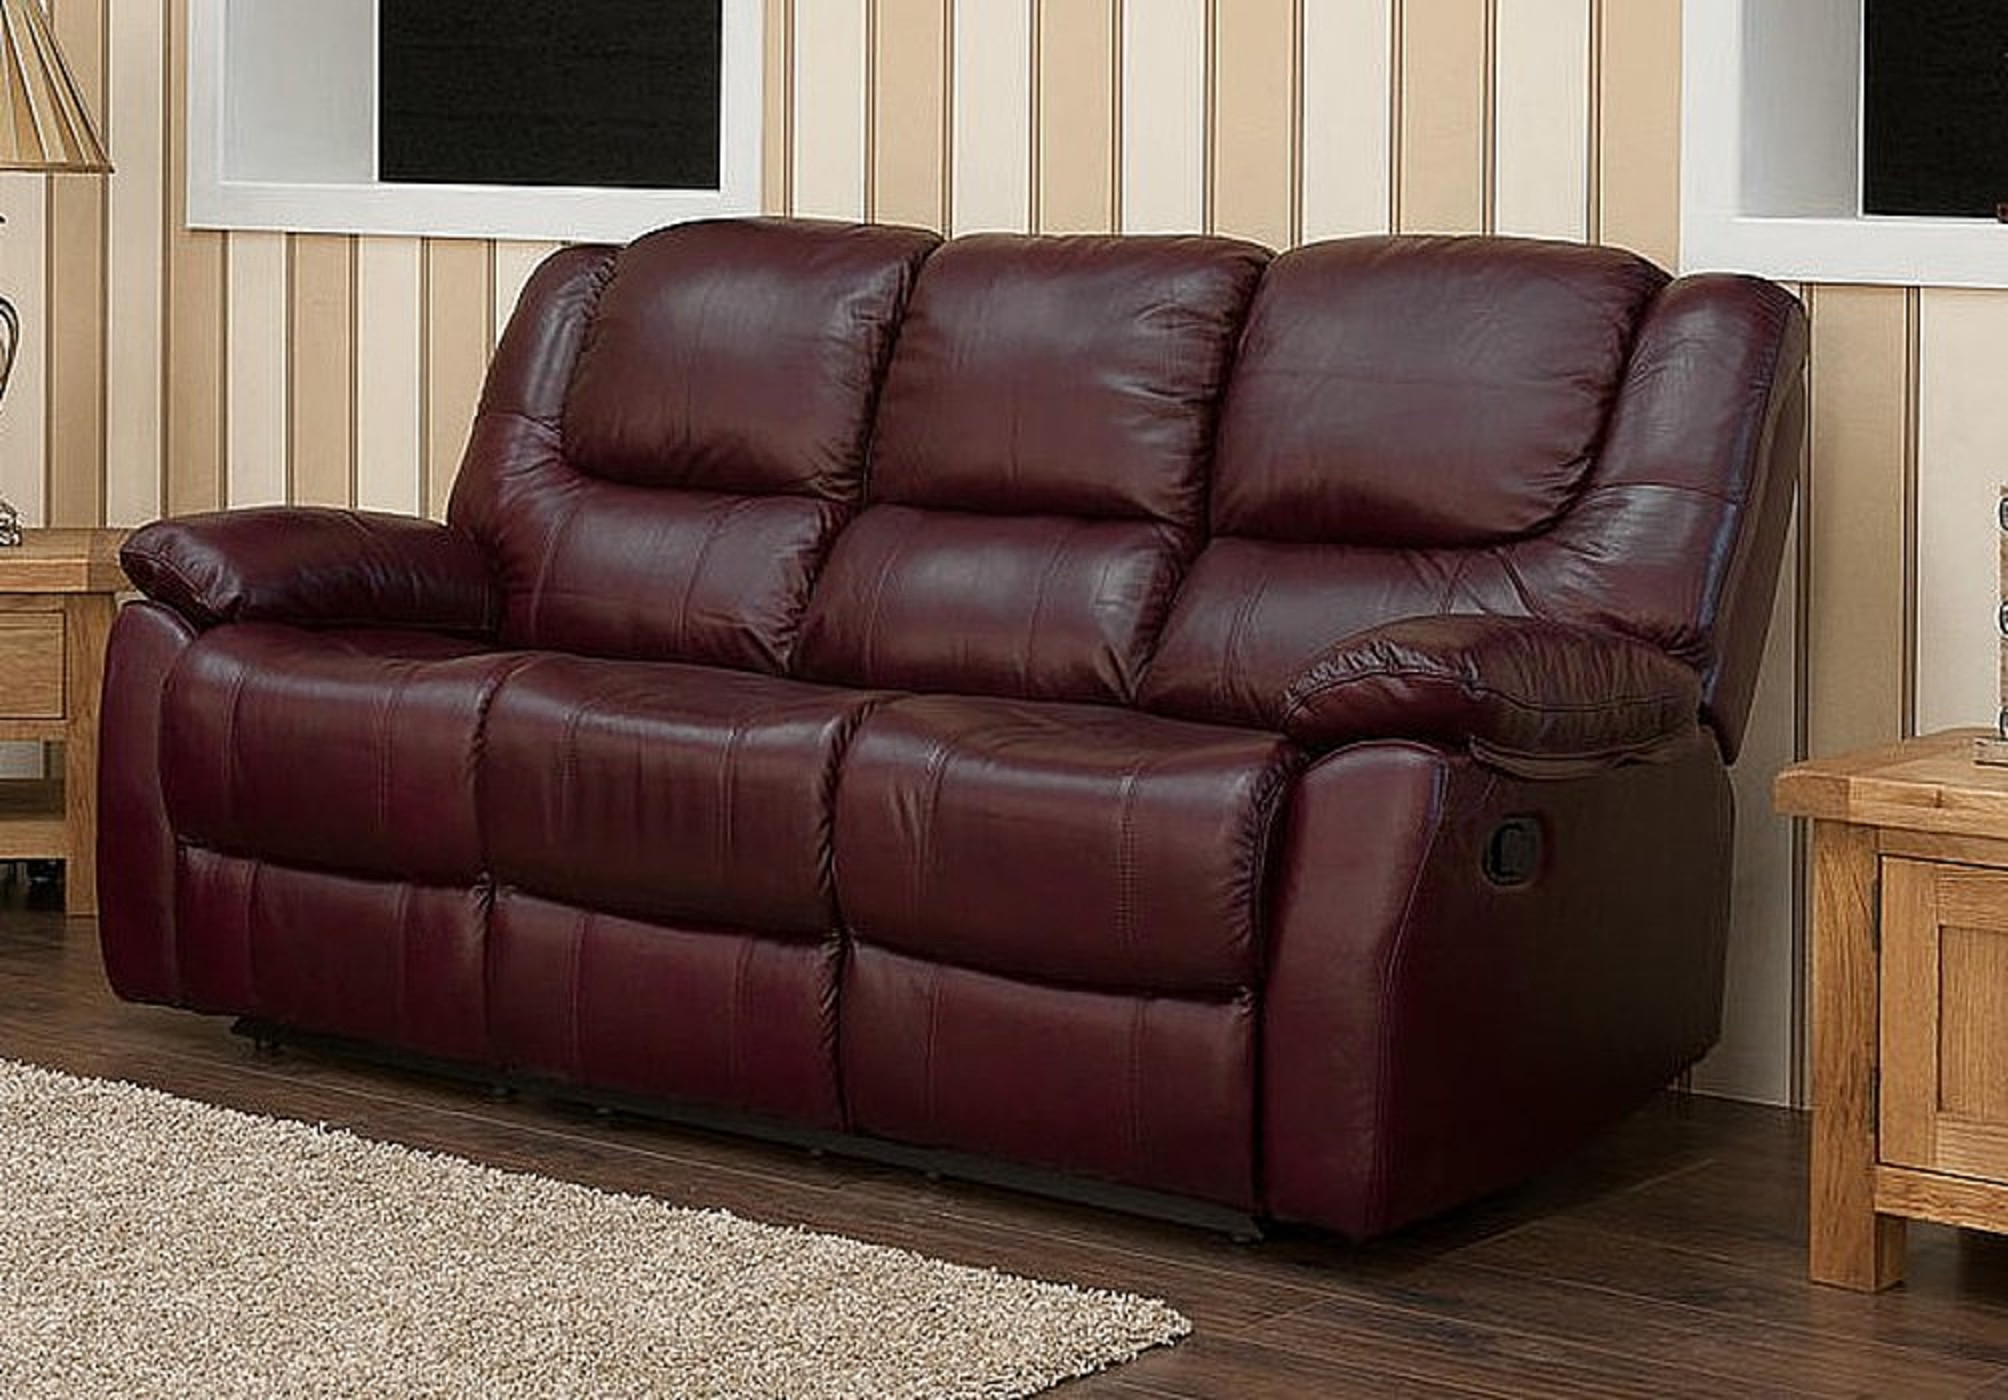 donate sofa sydney sectional sofas for sale by owner harveys 3 seater leather recliner | baci living room